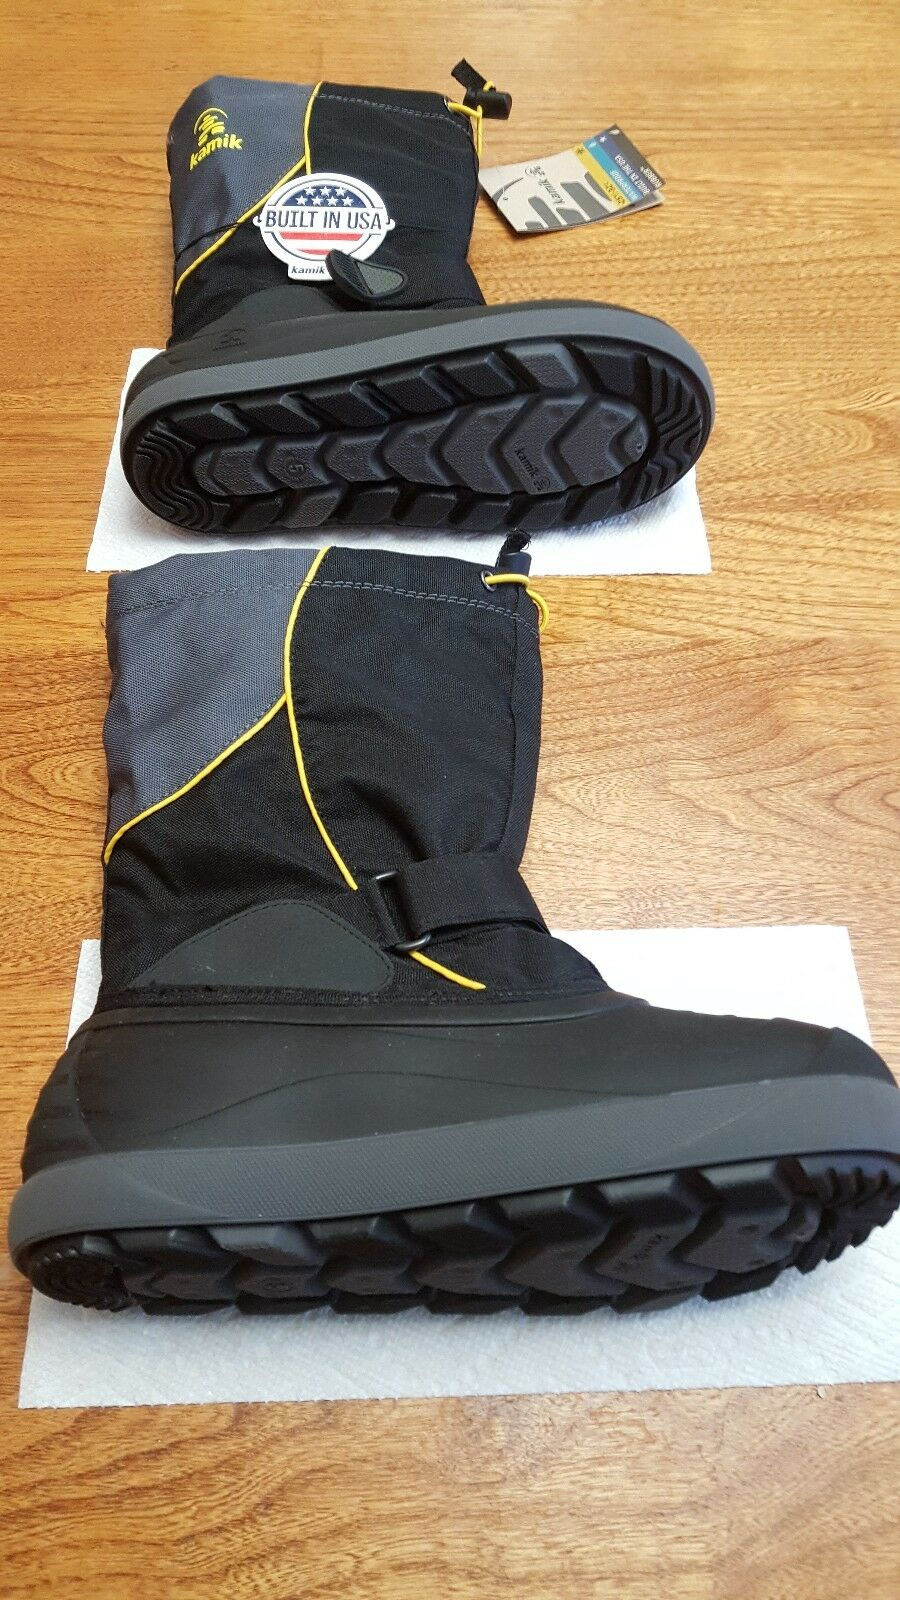 Kamik Water Proof Built in The USA Boots Unisex Black Size 5 14105-Black